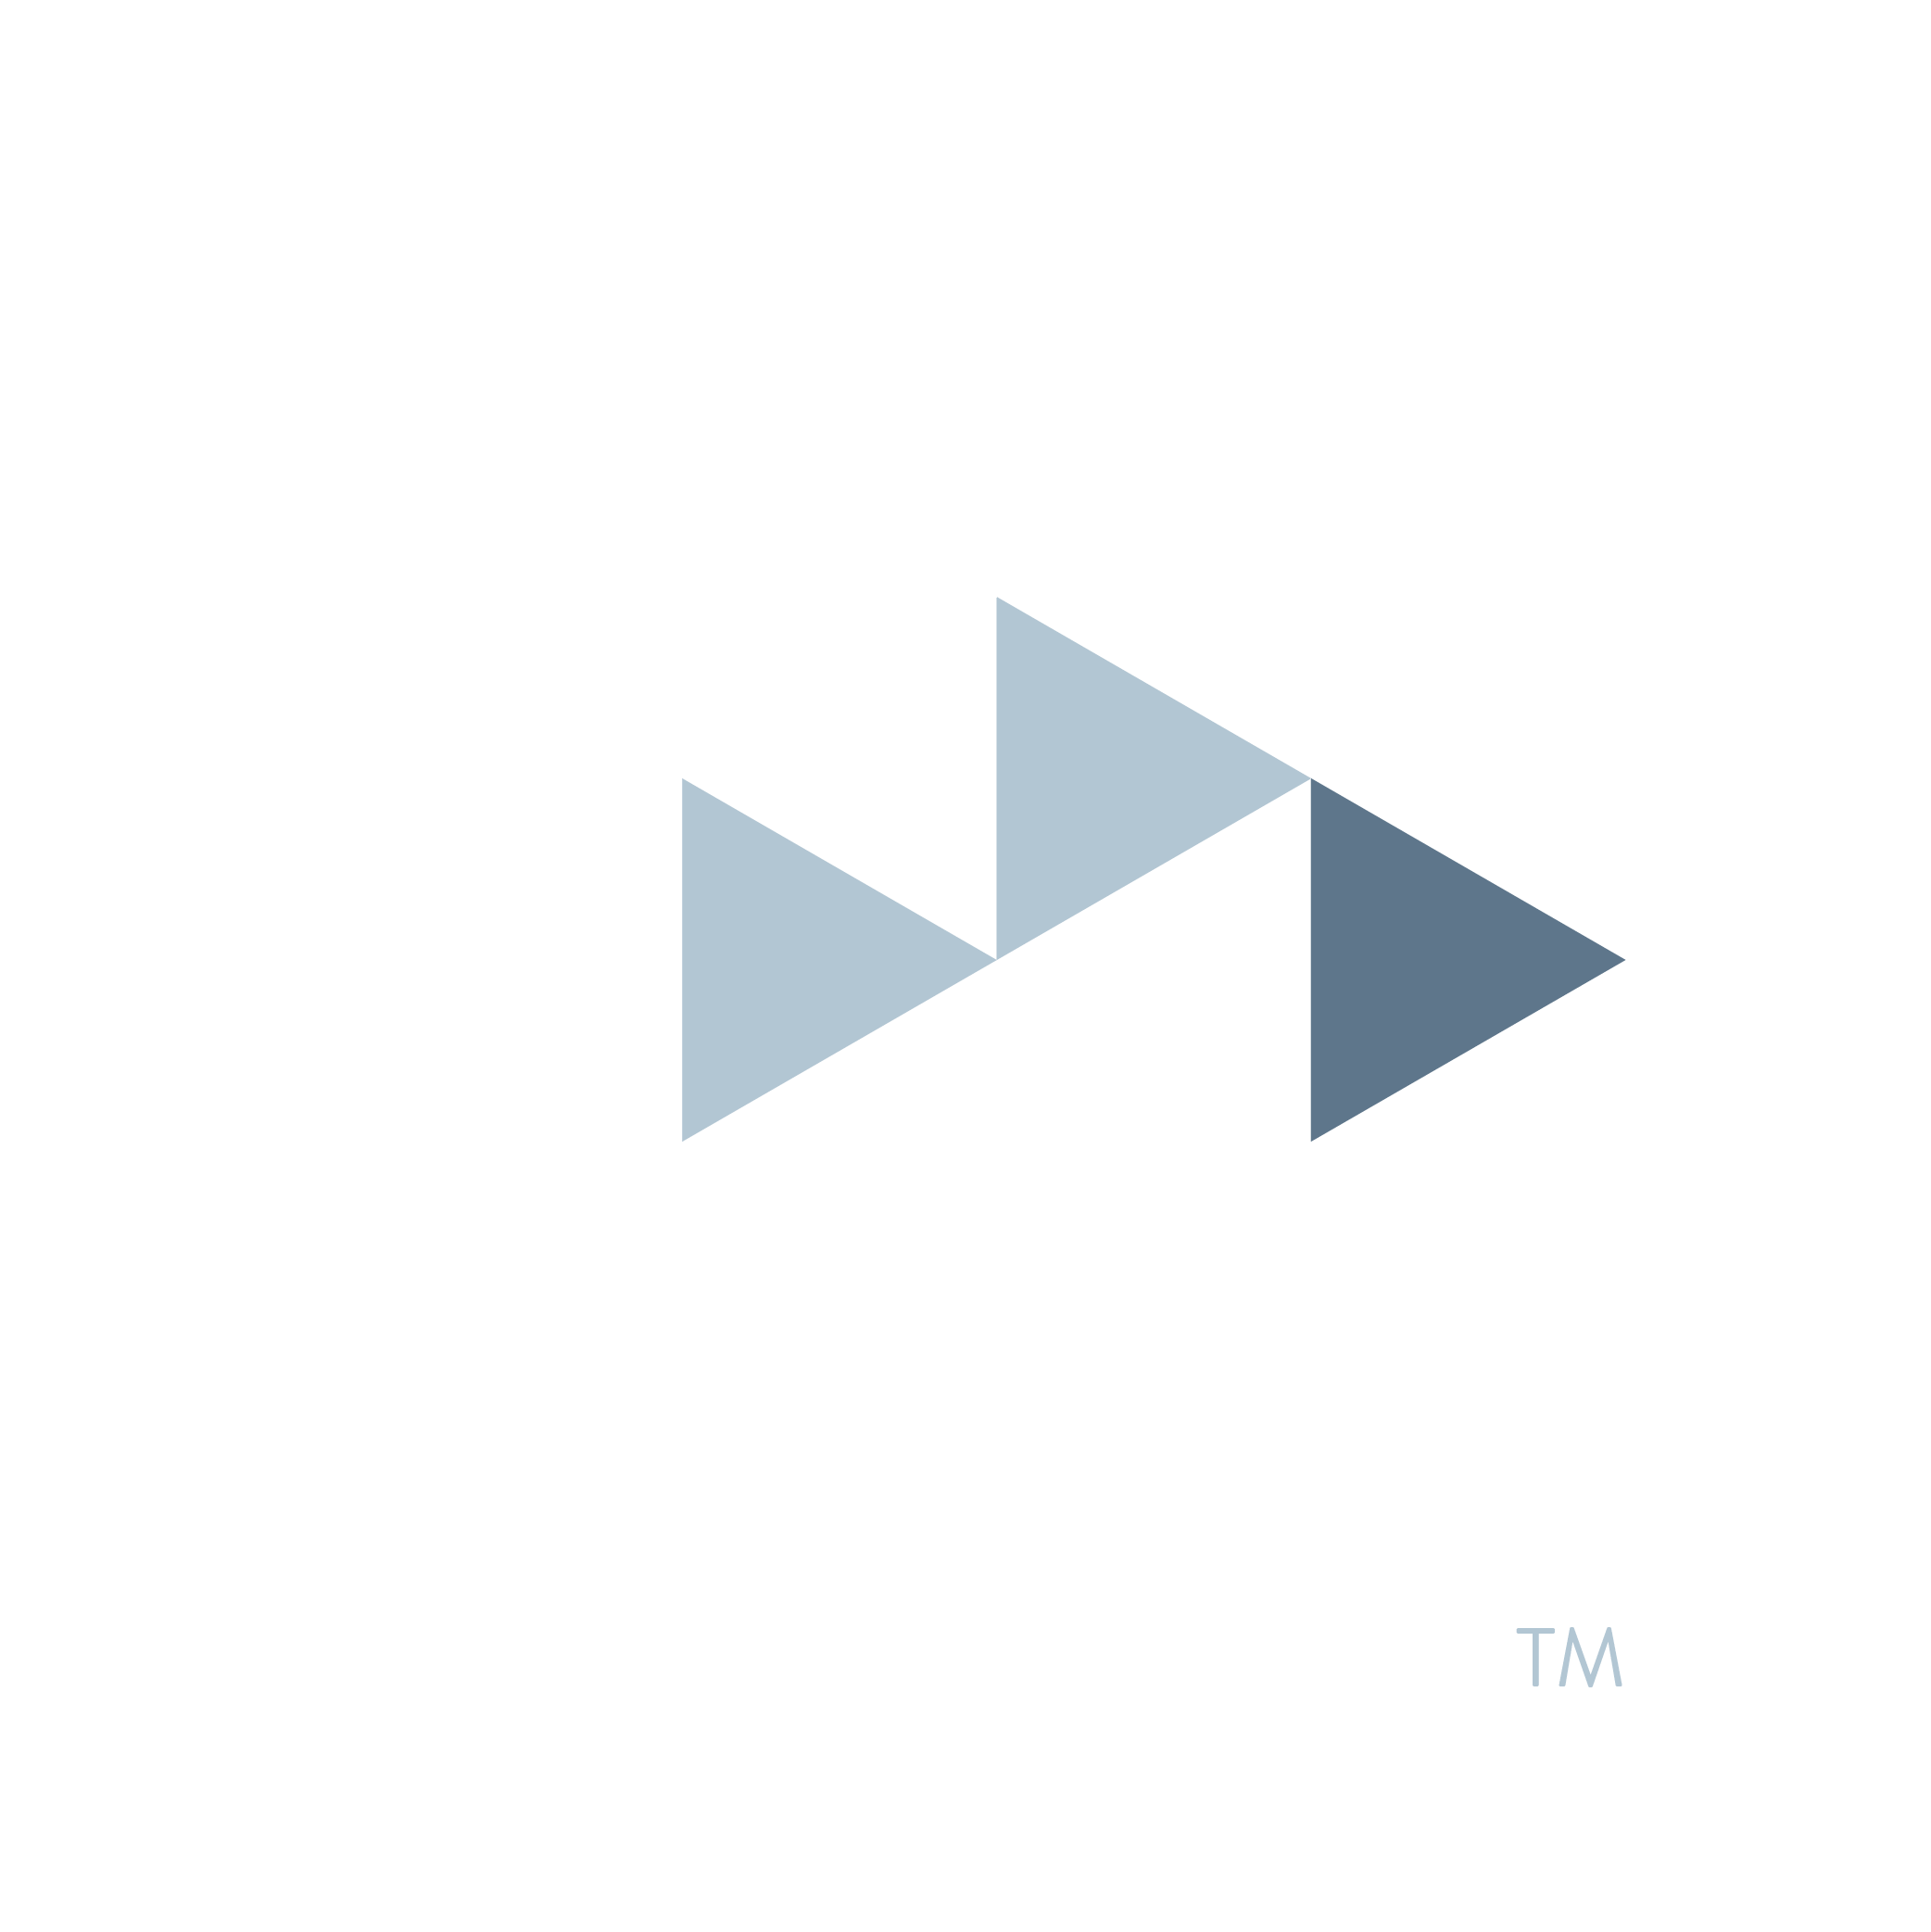 proceed icon